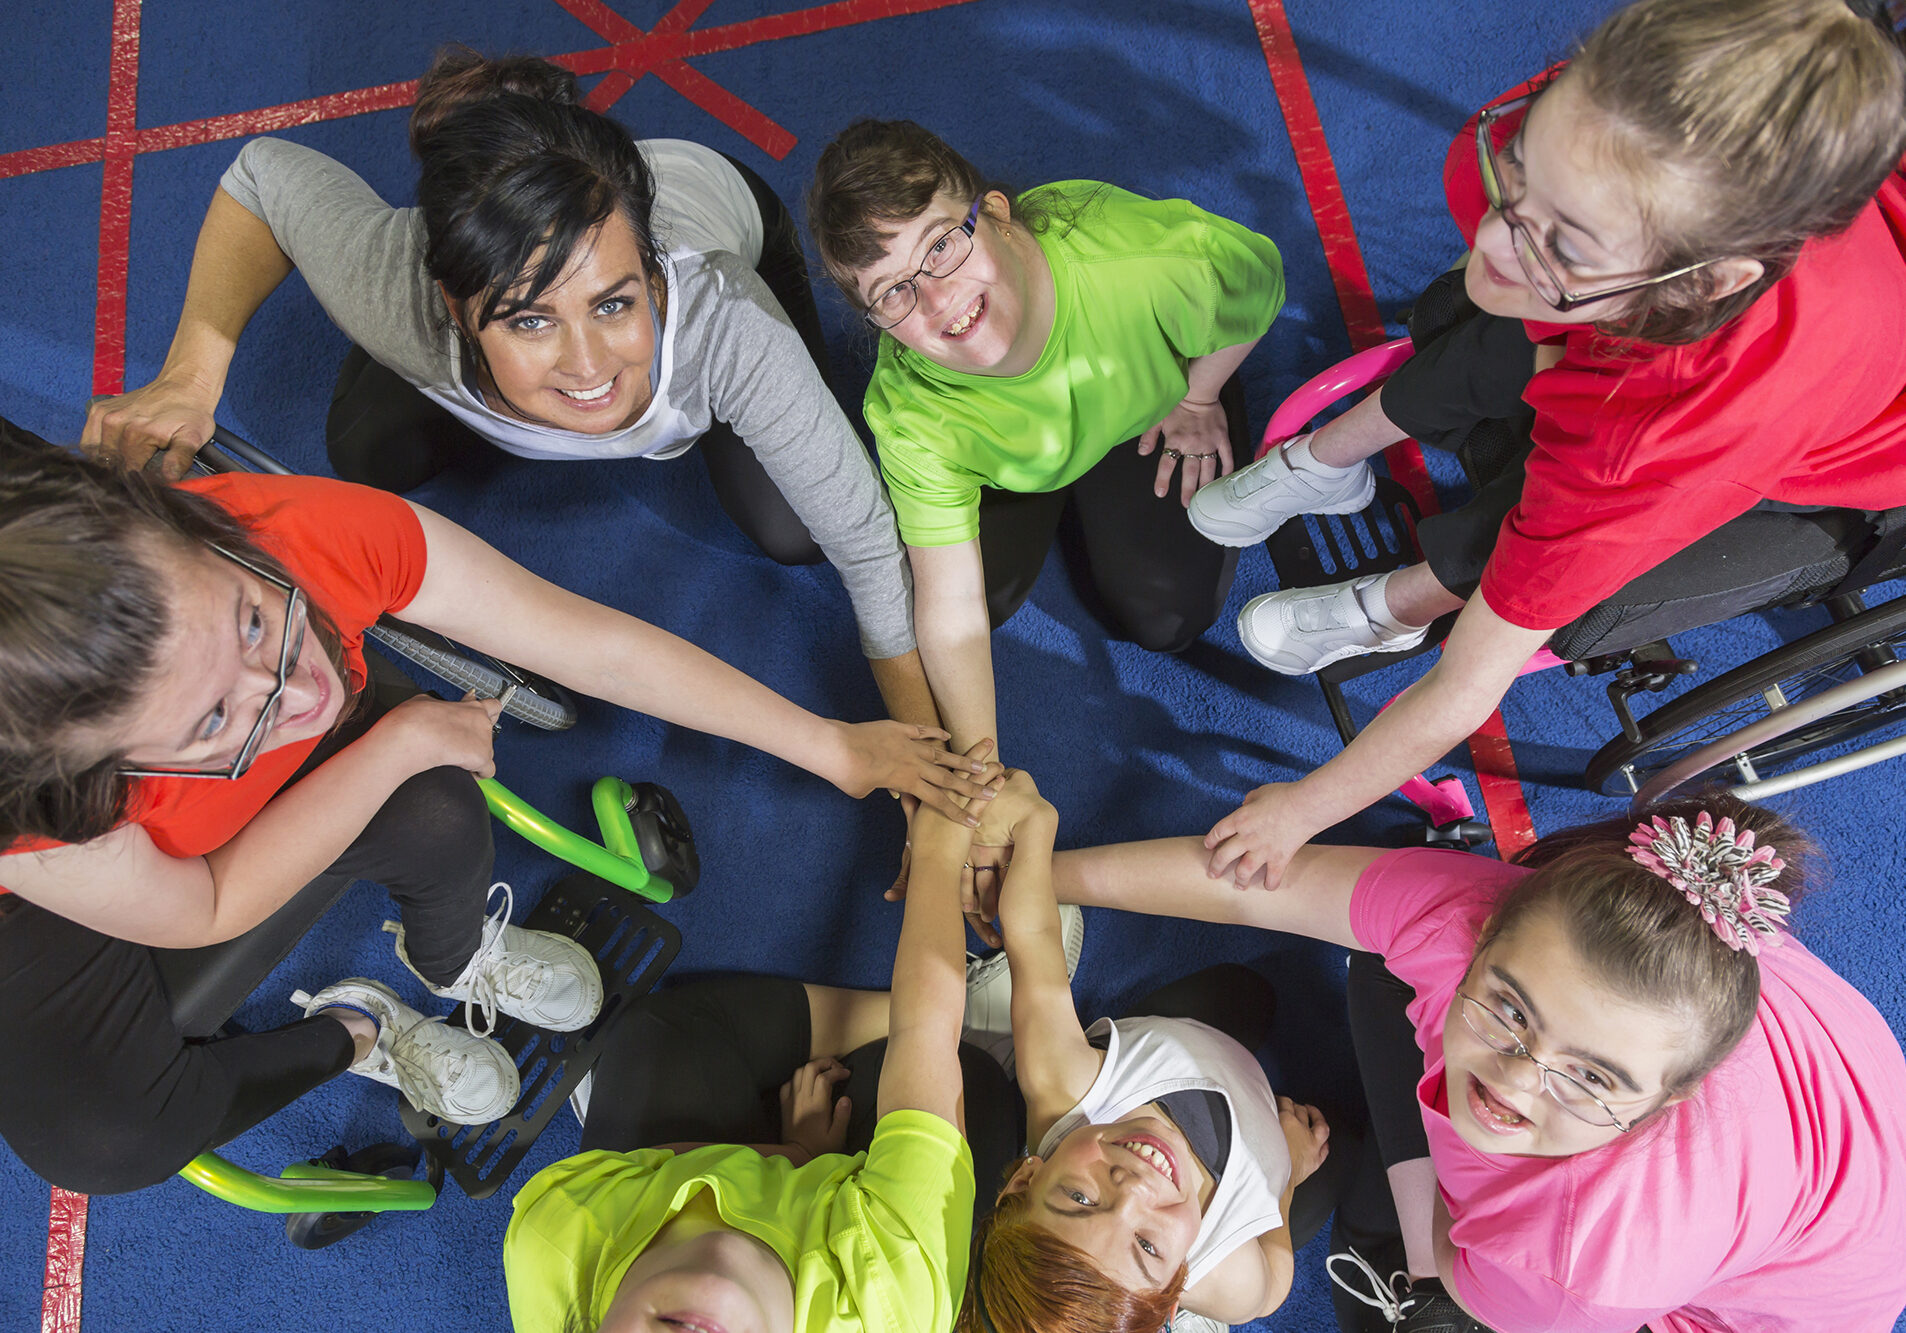 Overhead view of a group of special needs teenagers and young women with instructor, showing team spirit. They are sitting in a circle on a gym floor, hands in the center. Several of the girls have downs syndrome and two are in wheelchairs.